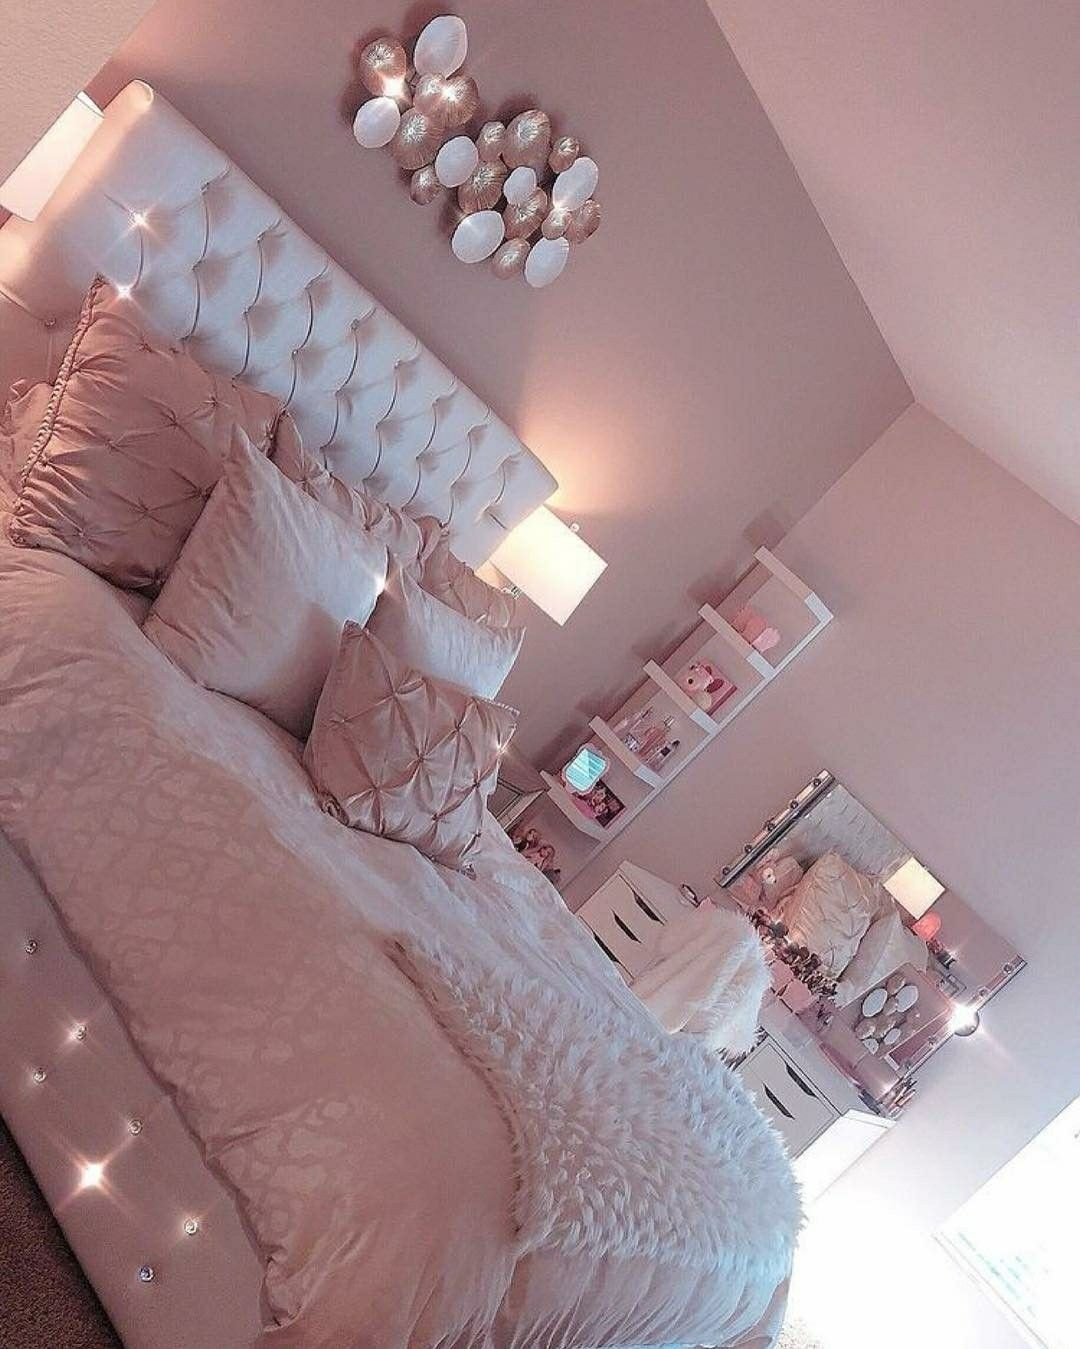 Pin By Mickey Breezy On Rooms Pink Living Room Pink Living Room Decor Pink Bedroom Design